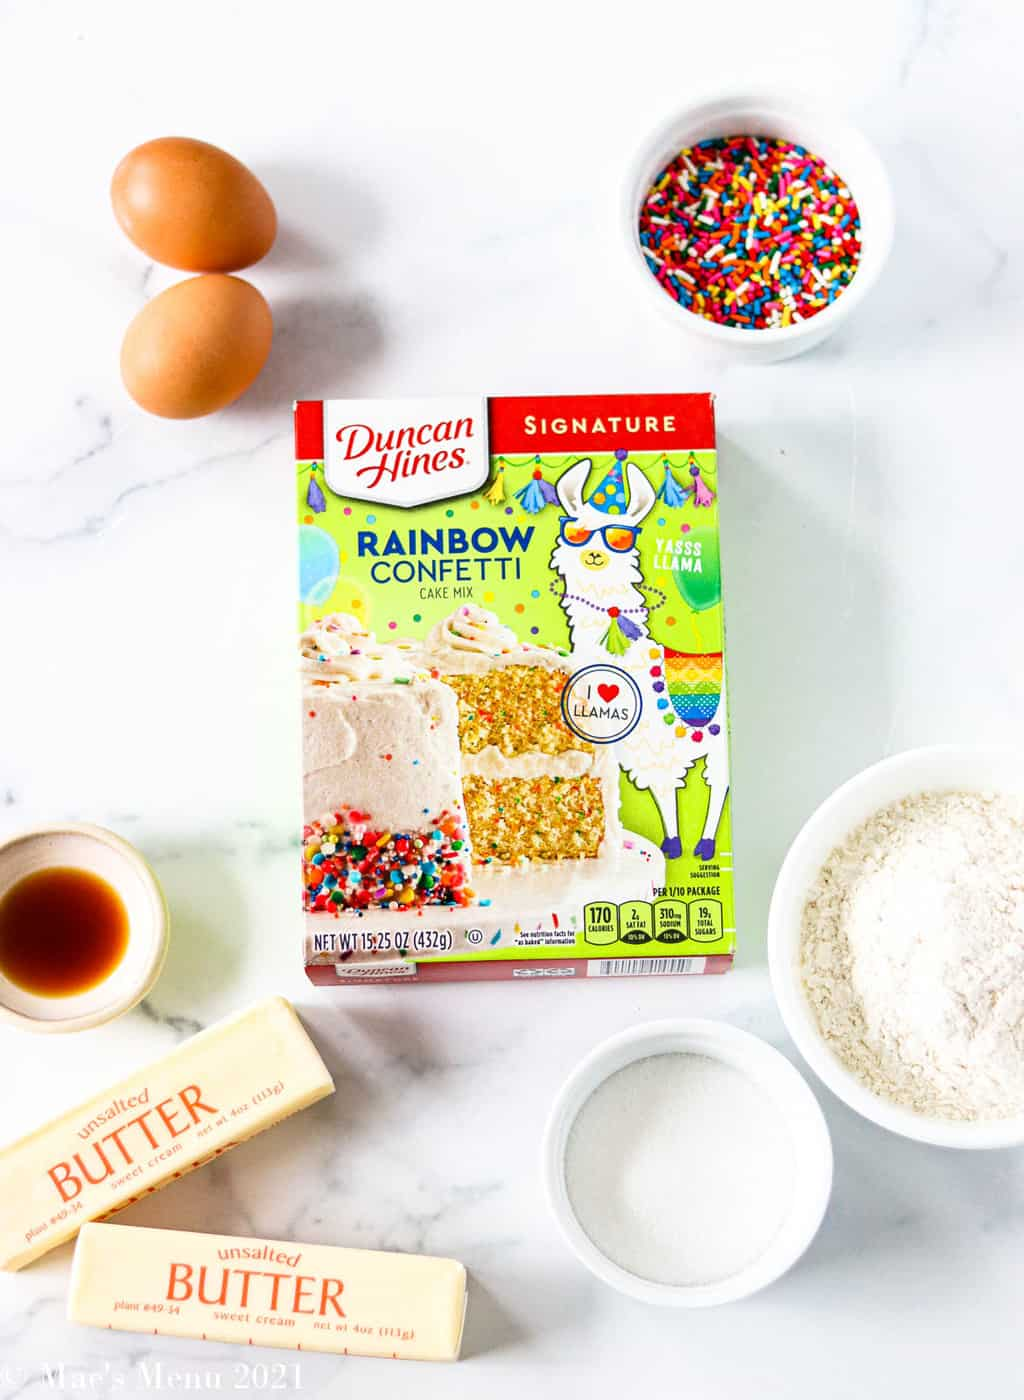 All the ingredients for rainbow confetti -- confetti cake mix, sprinkles, eggs, vanilla extract, butter, sugar, and flour